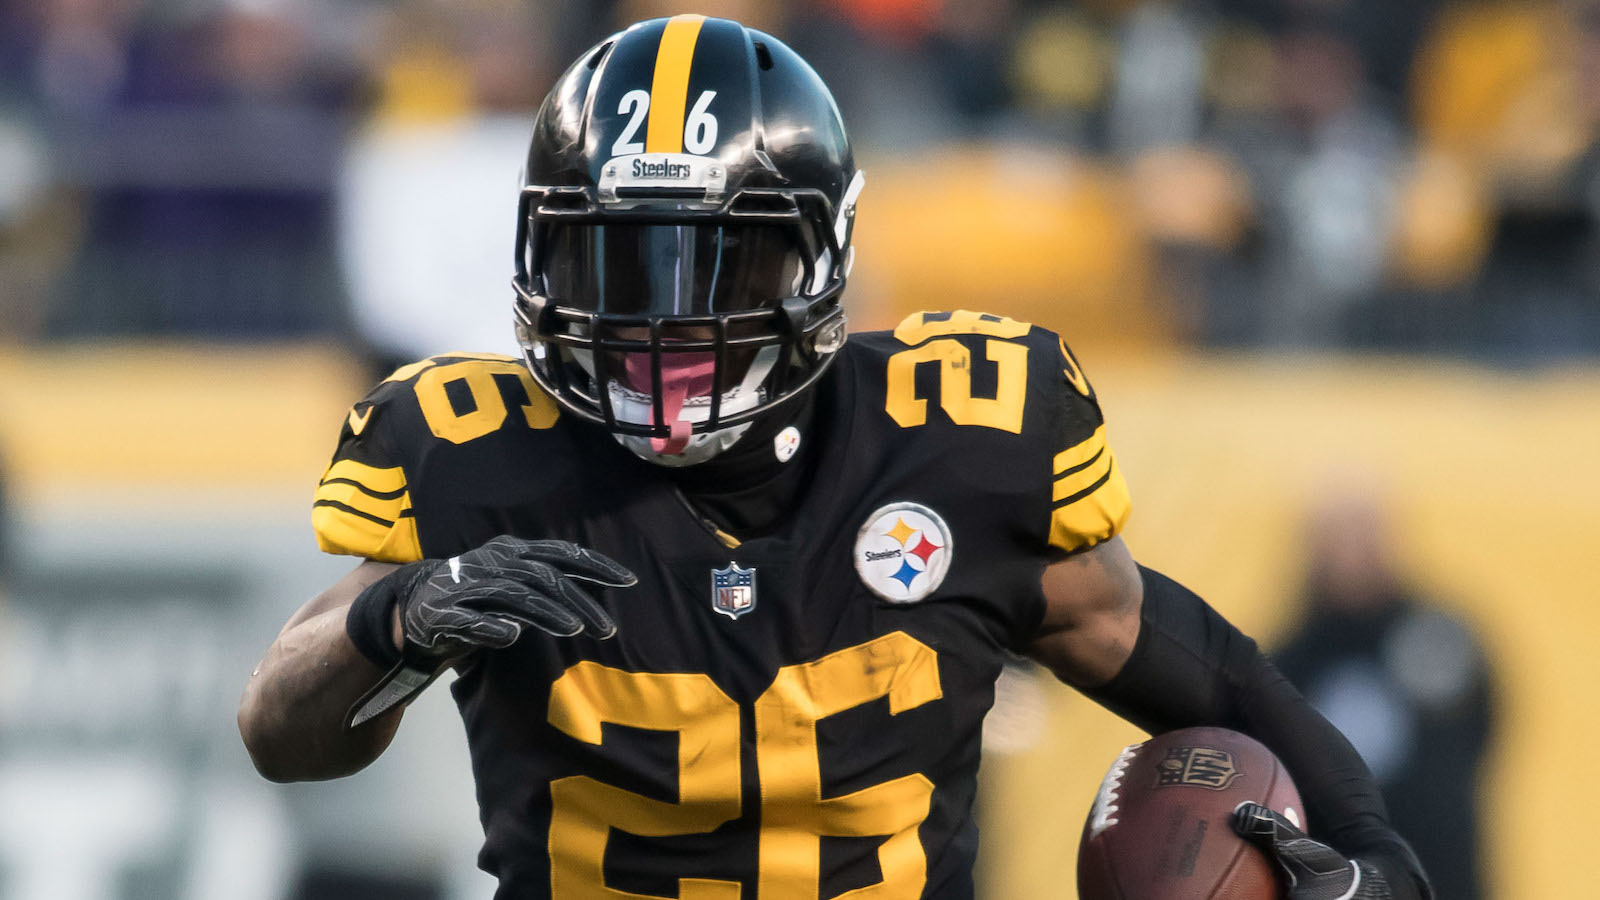 Dec 25, 2016; Pittsburgh, PA, USA; Pittsburgh Steelers running back Le'Veon Bell (26) runs with the ball during the first quarter of a game against the Baltimore Ravens at Heinz Field. Pittsburgh won the contest 31-27. Mandatory Credit: Mark Konezny-USA TODAY Sports